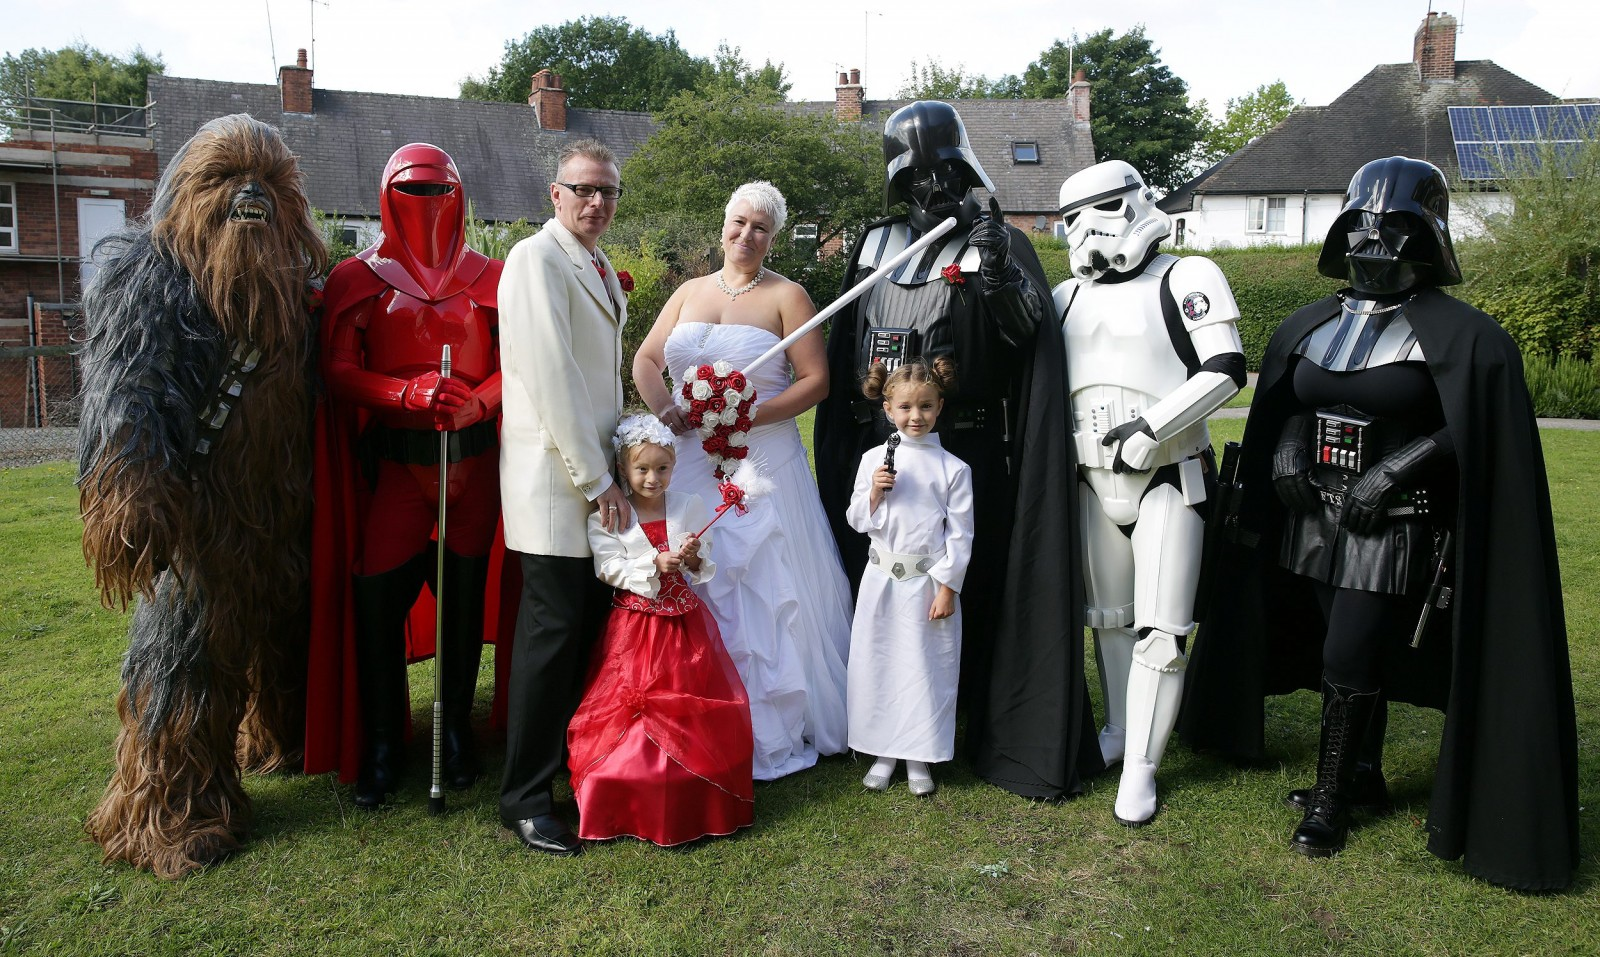 Take two Darth Vaders, a Storm Trooper and a Wookie and you've got yourself one heck of a wedding